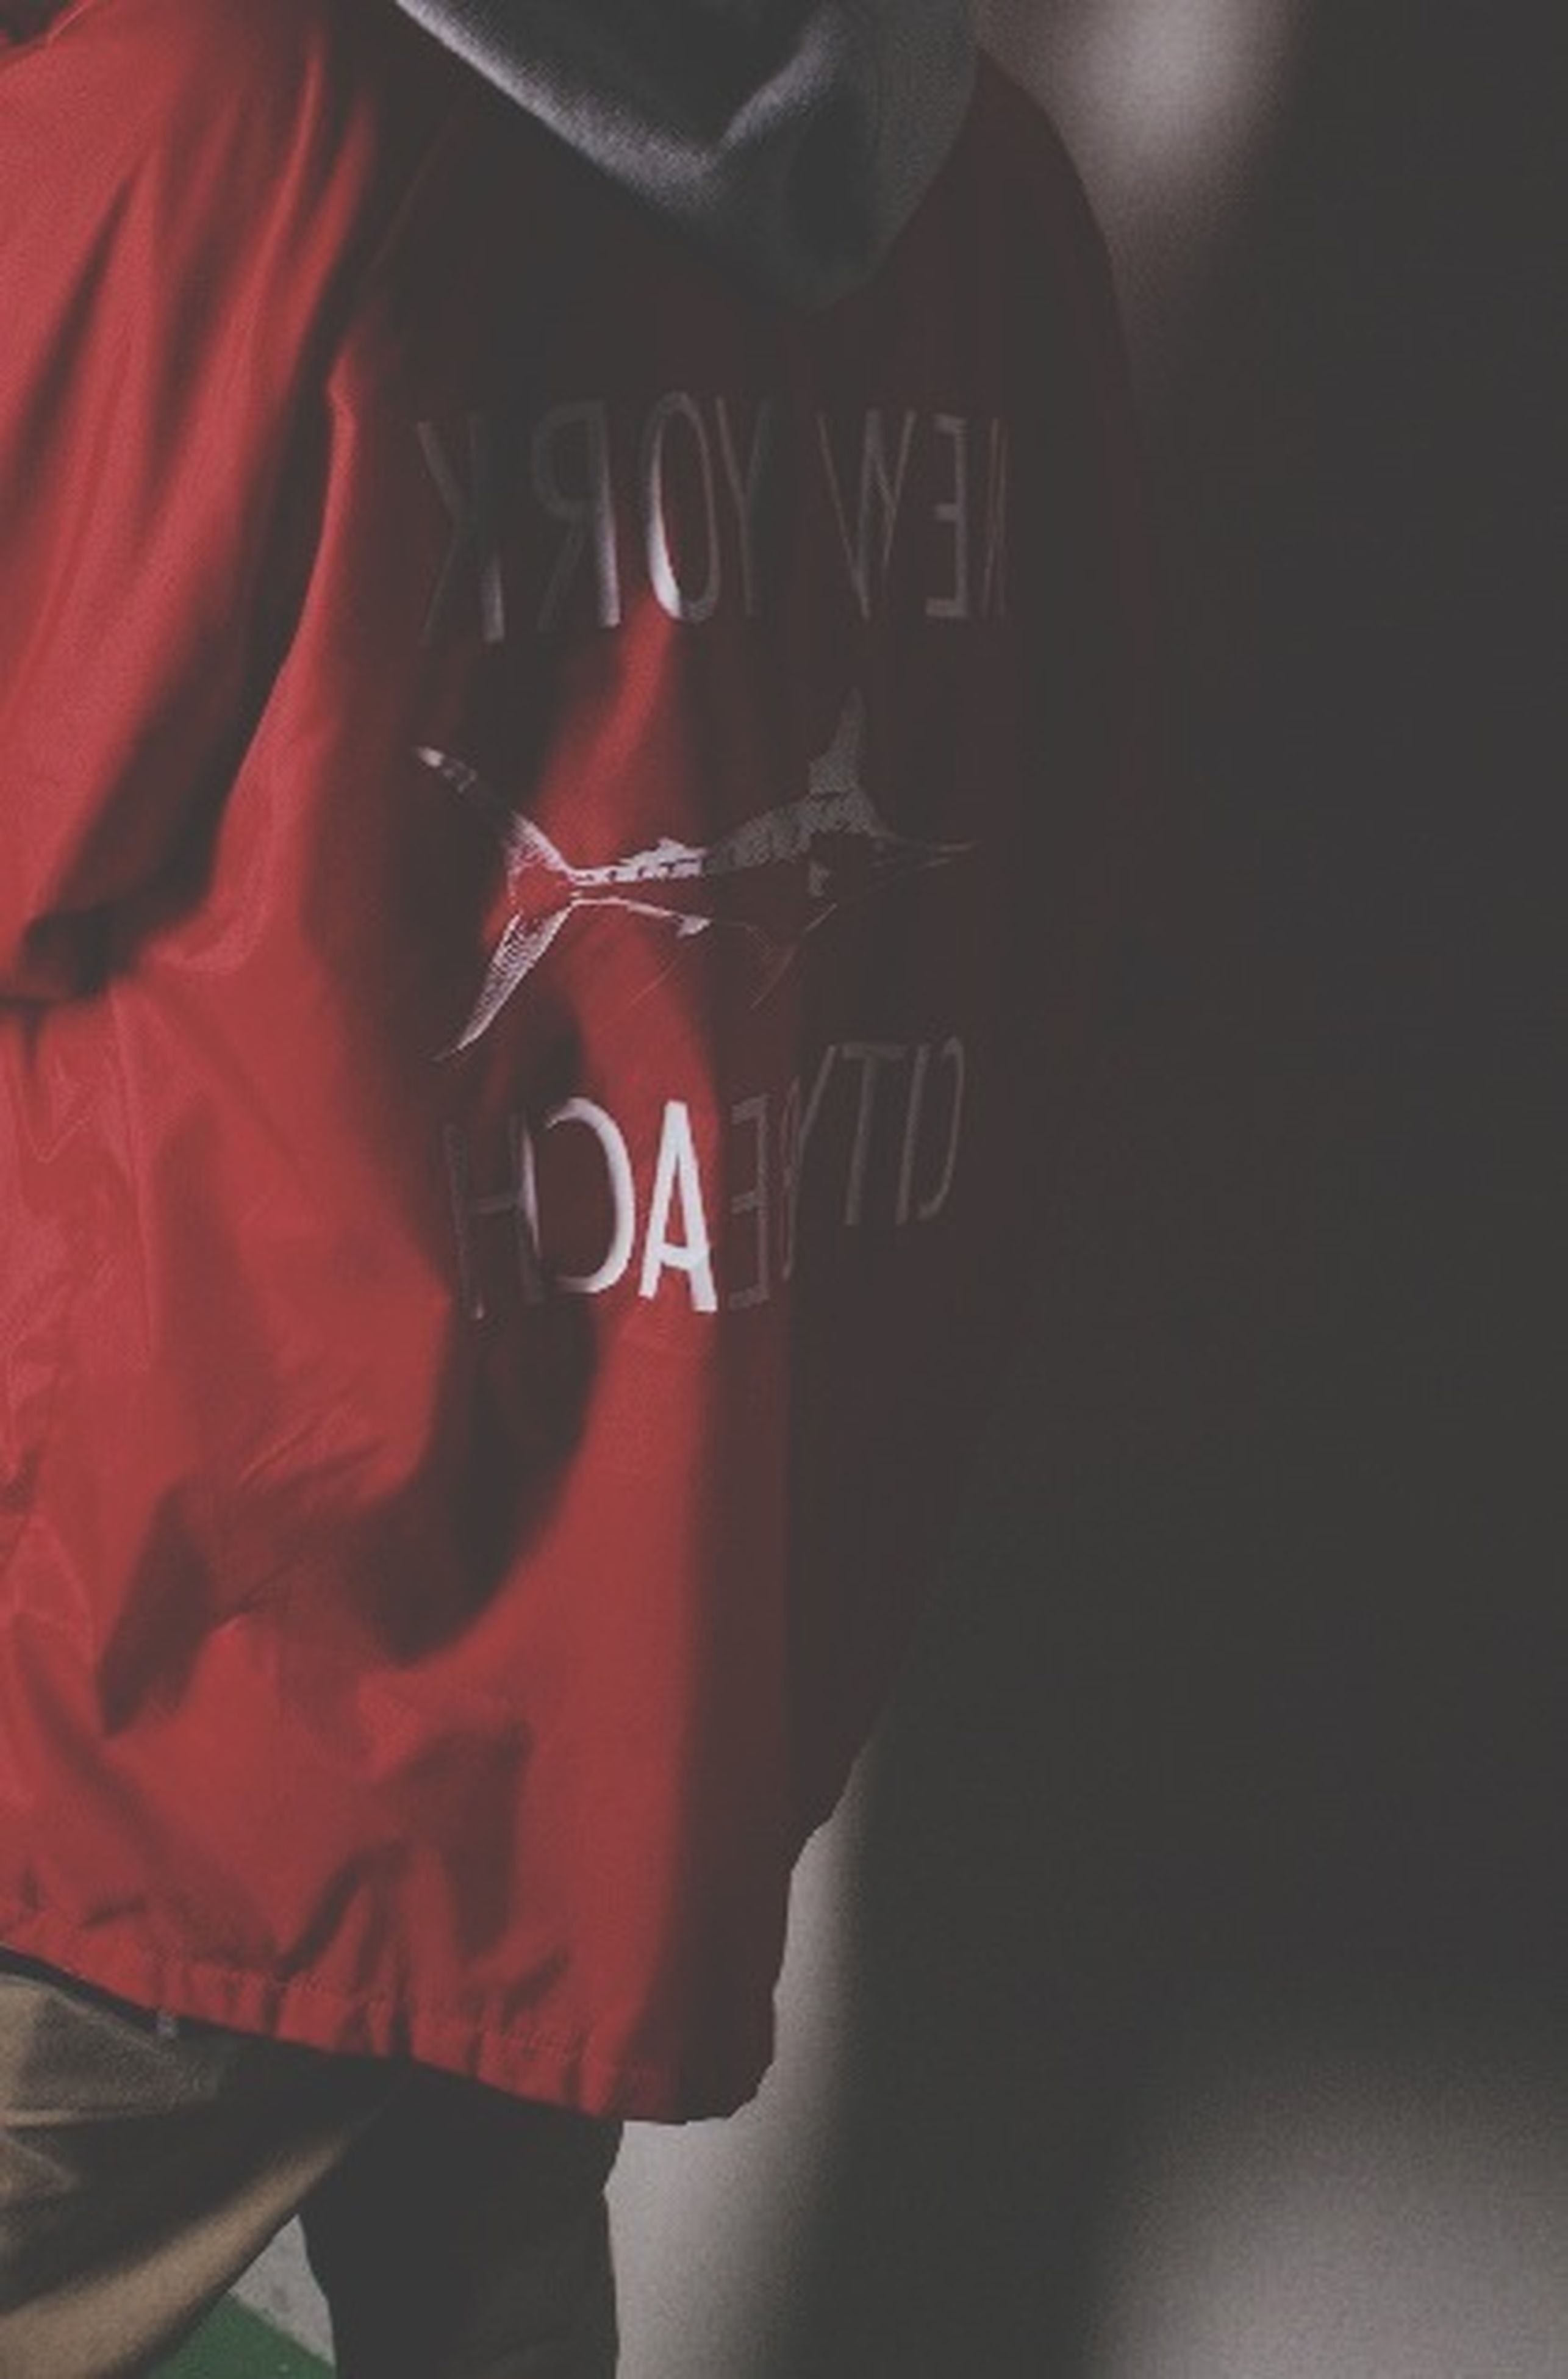 indoors, red, text, communication, lifestyles, western script, holding, close-up, men, leisure activity, person, unrecognizable person, part of, midsection, casual clothing, focus on foreground